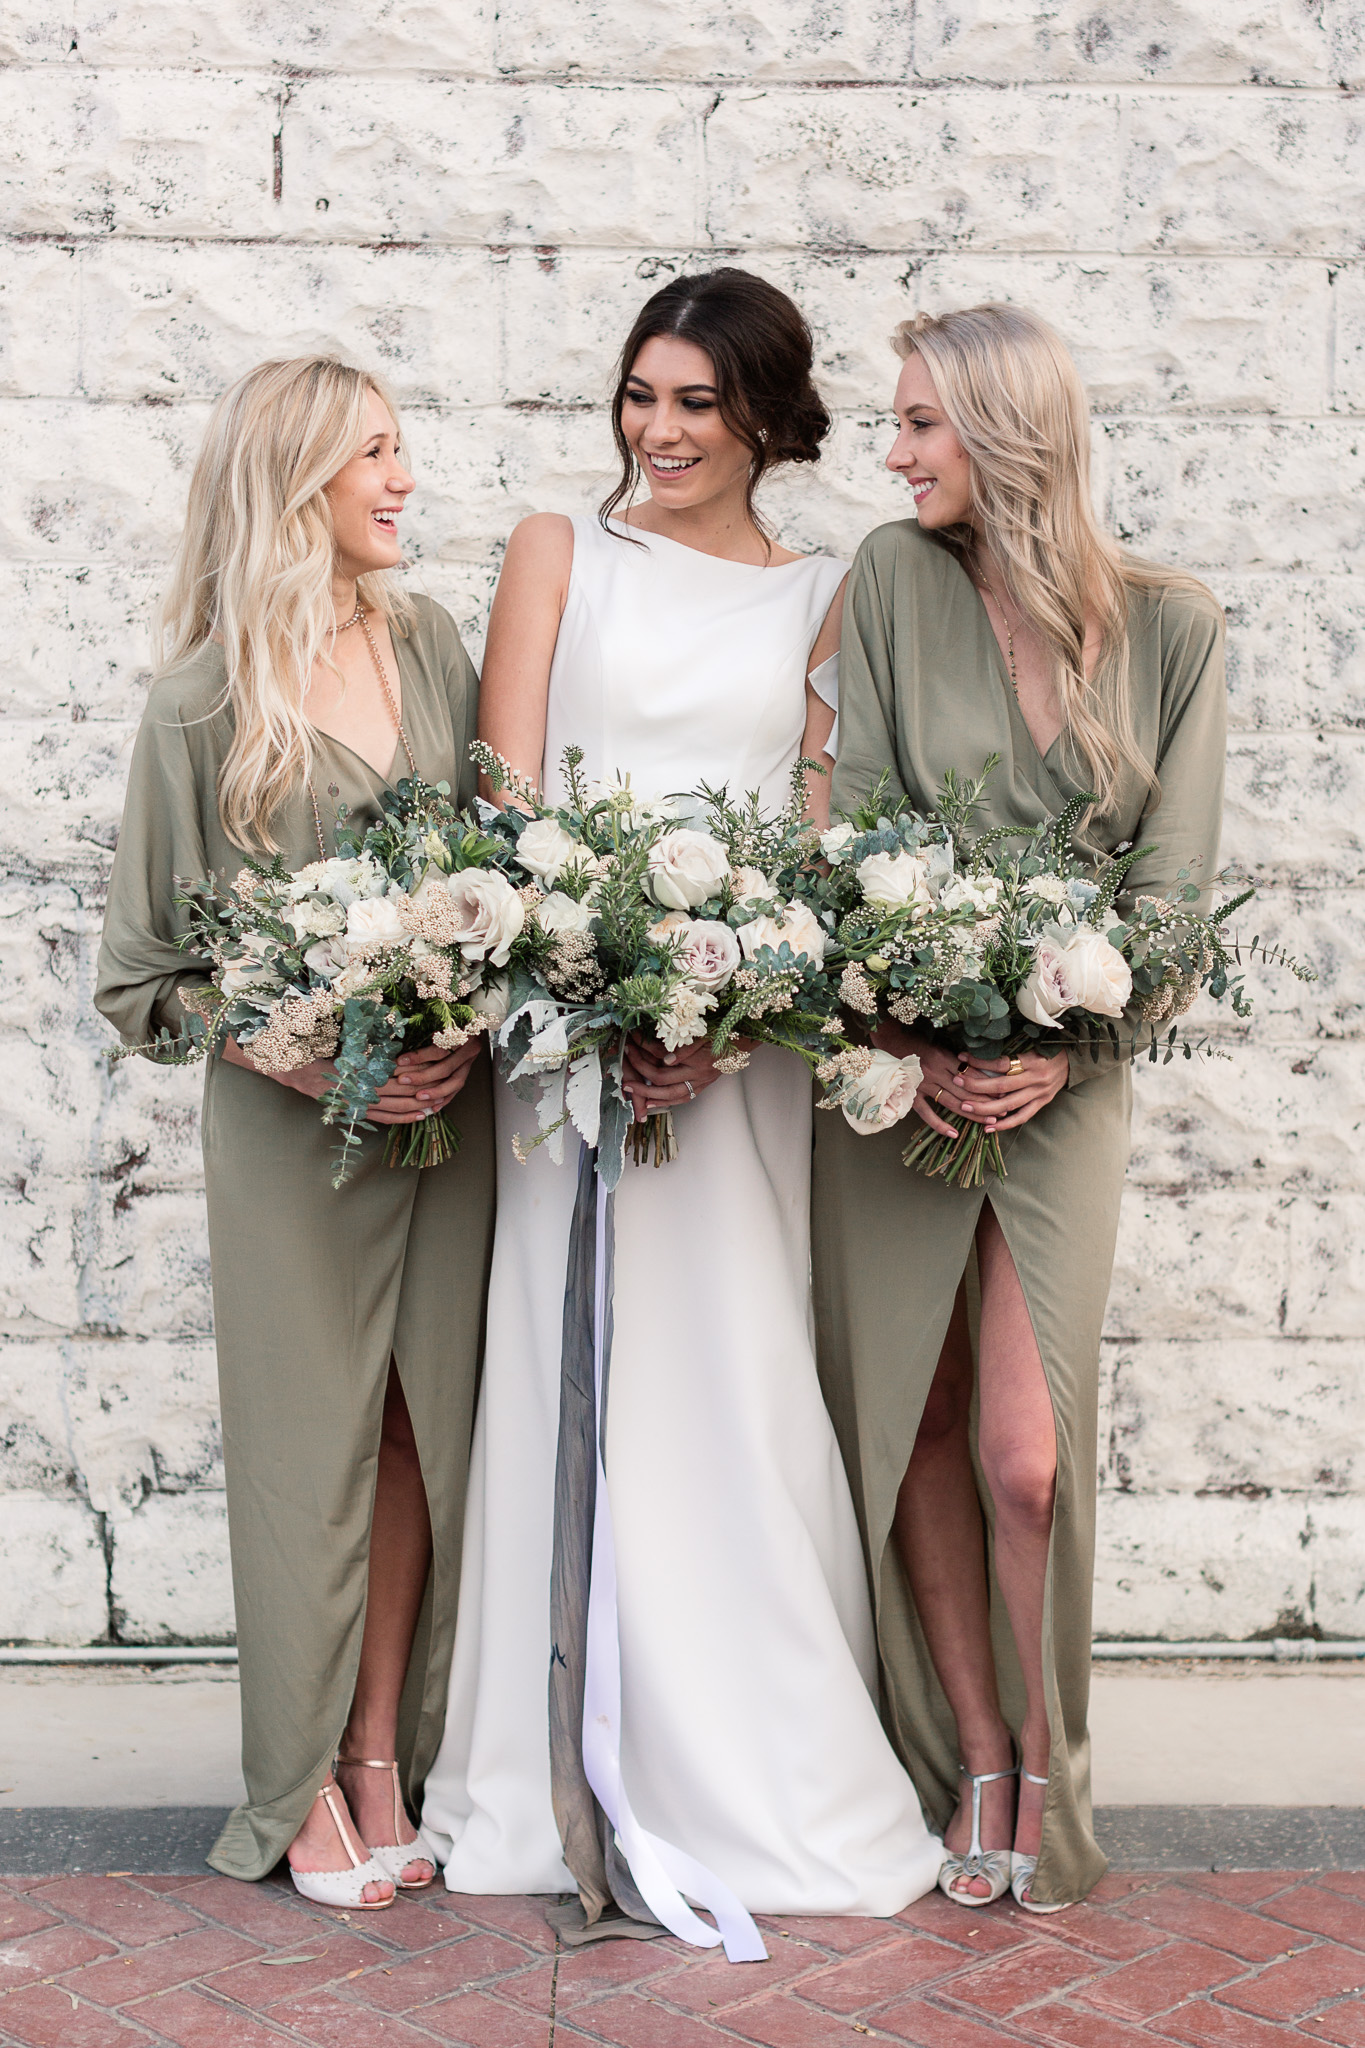 olive bridesmaid dresses - photo by B.Matthews Creative https://ruffledblog.com/organic-italian-inspired-wedding-ideas